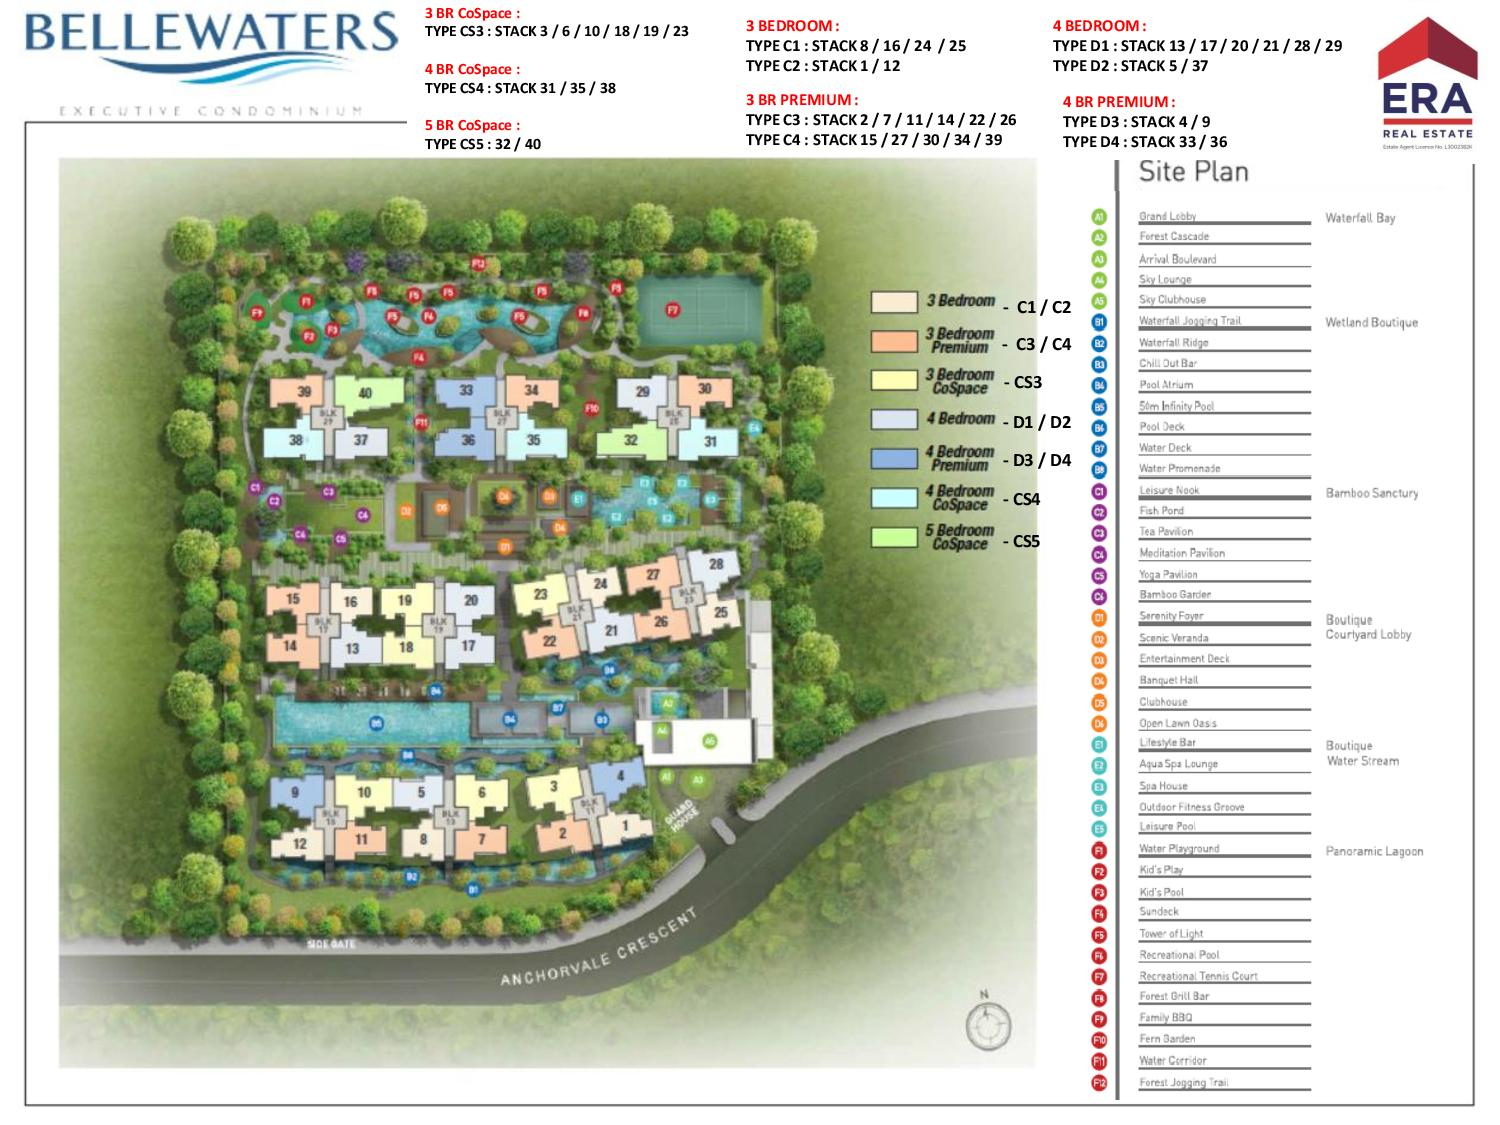 Bellewaters EC with no resale levy to HDB 2nd timers, Bellewaters EC TOP soon, Bellewaters price discount